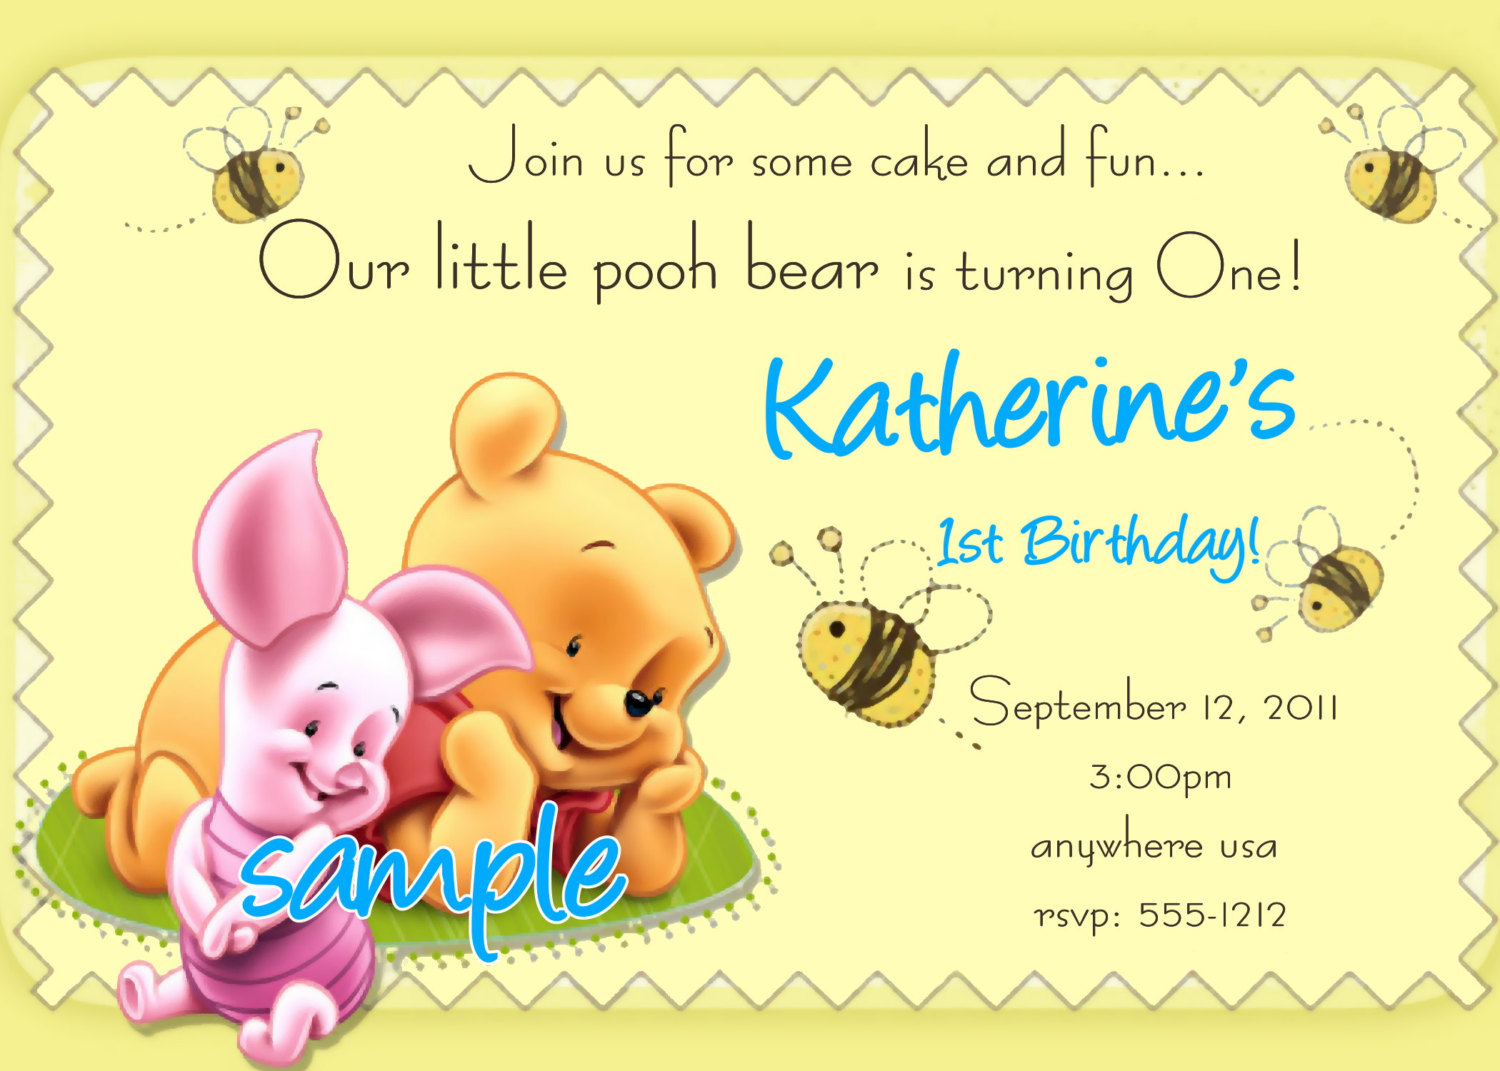 online birthday invitation card maker with photo ; nice-maker-invitation-card-for-birthday-modern-designing-template-printable-yellow-color-winnie-the-pooh-inspiration